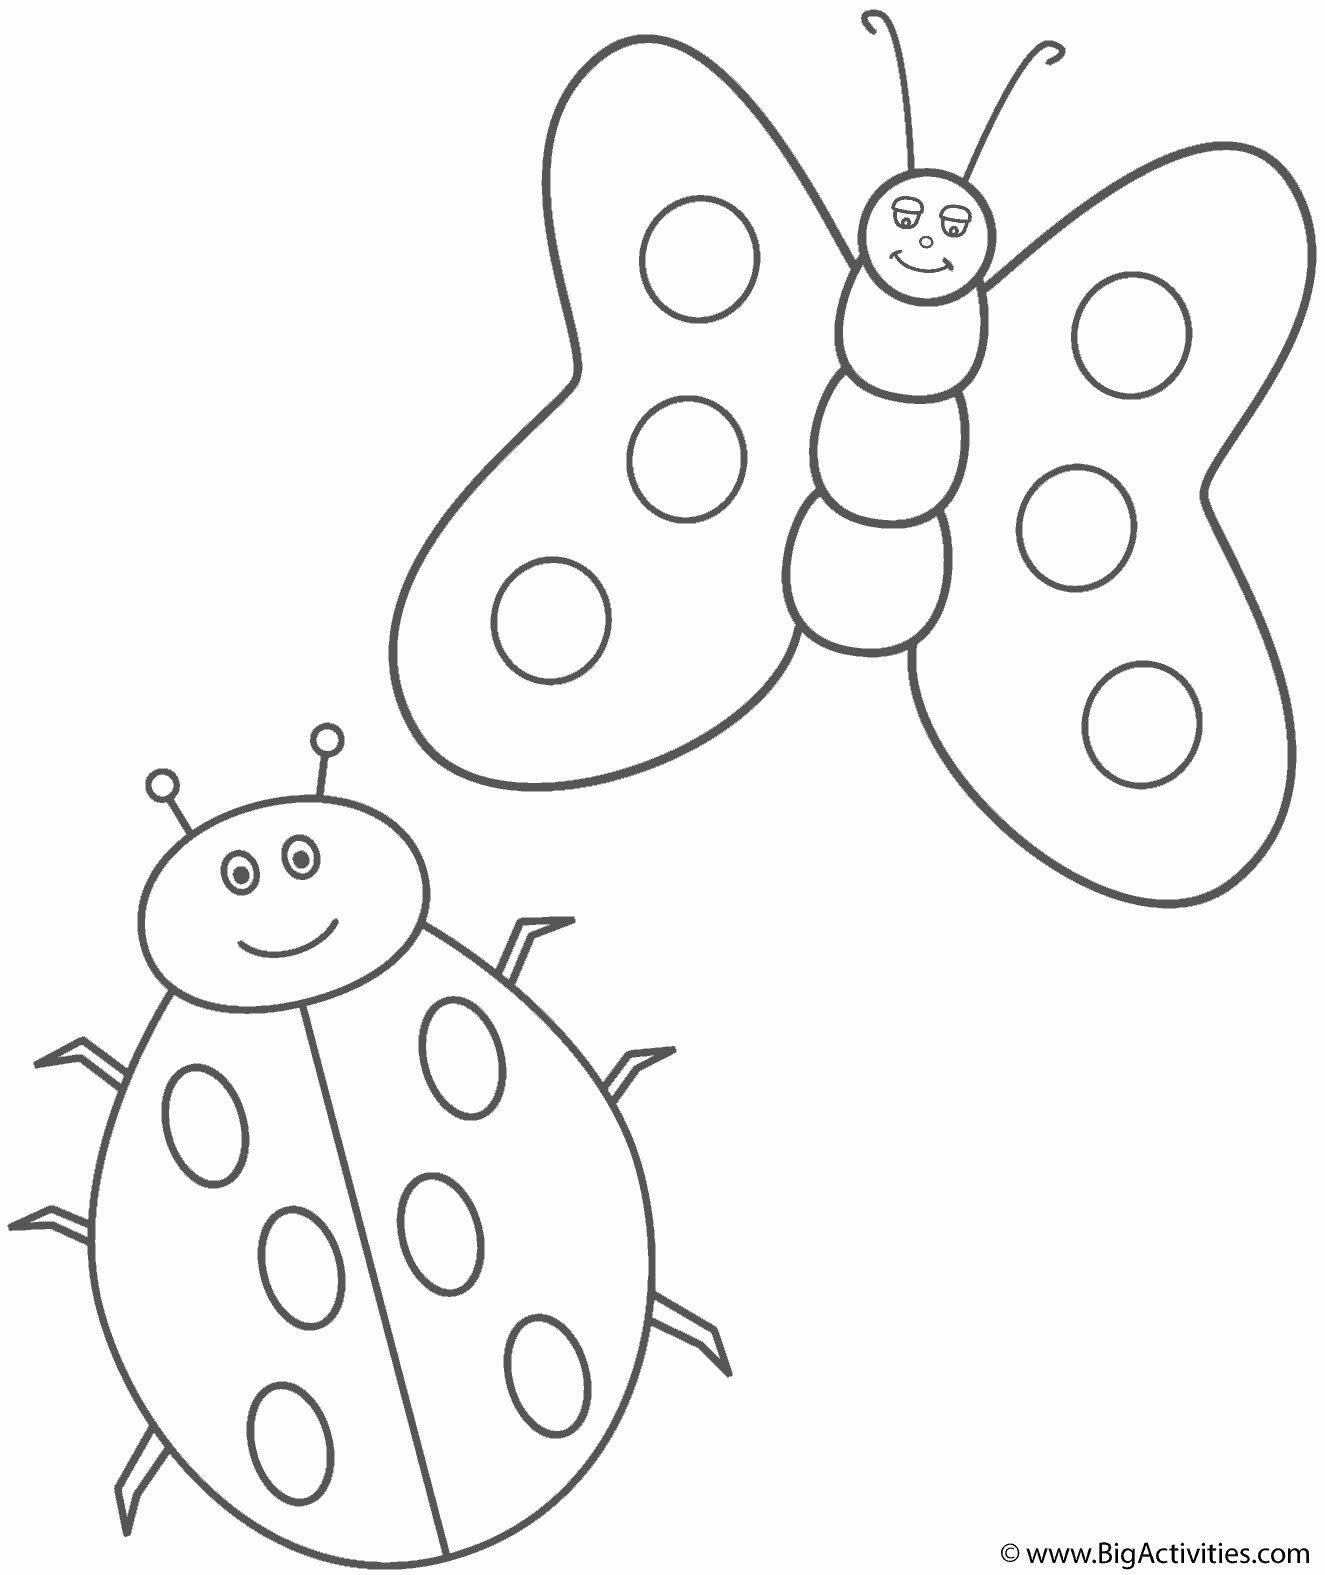 32 Lady Bug Coloring Page In 2020 Bug Coloring Pages Ladybug